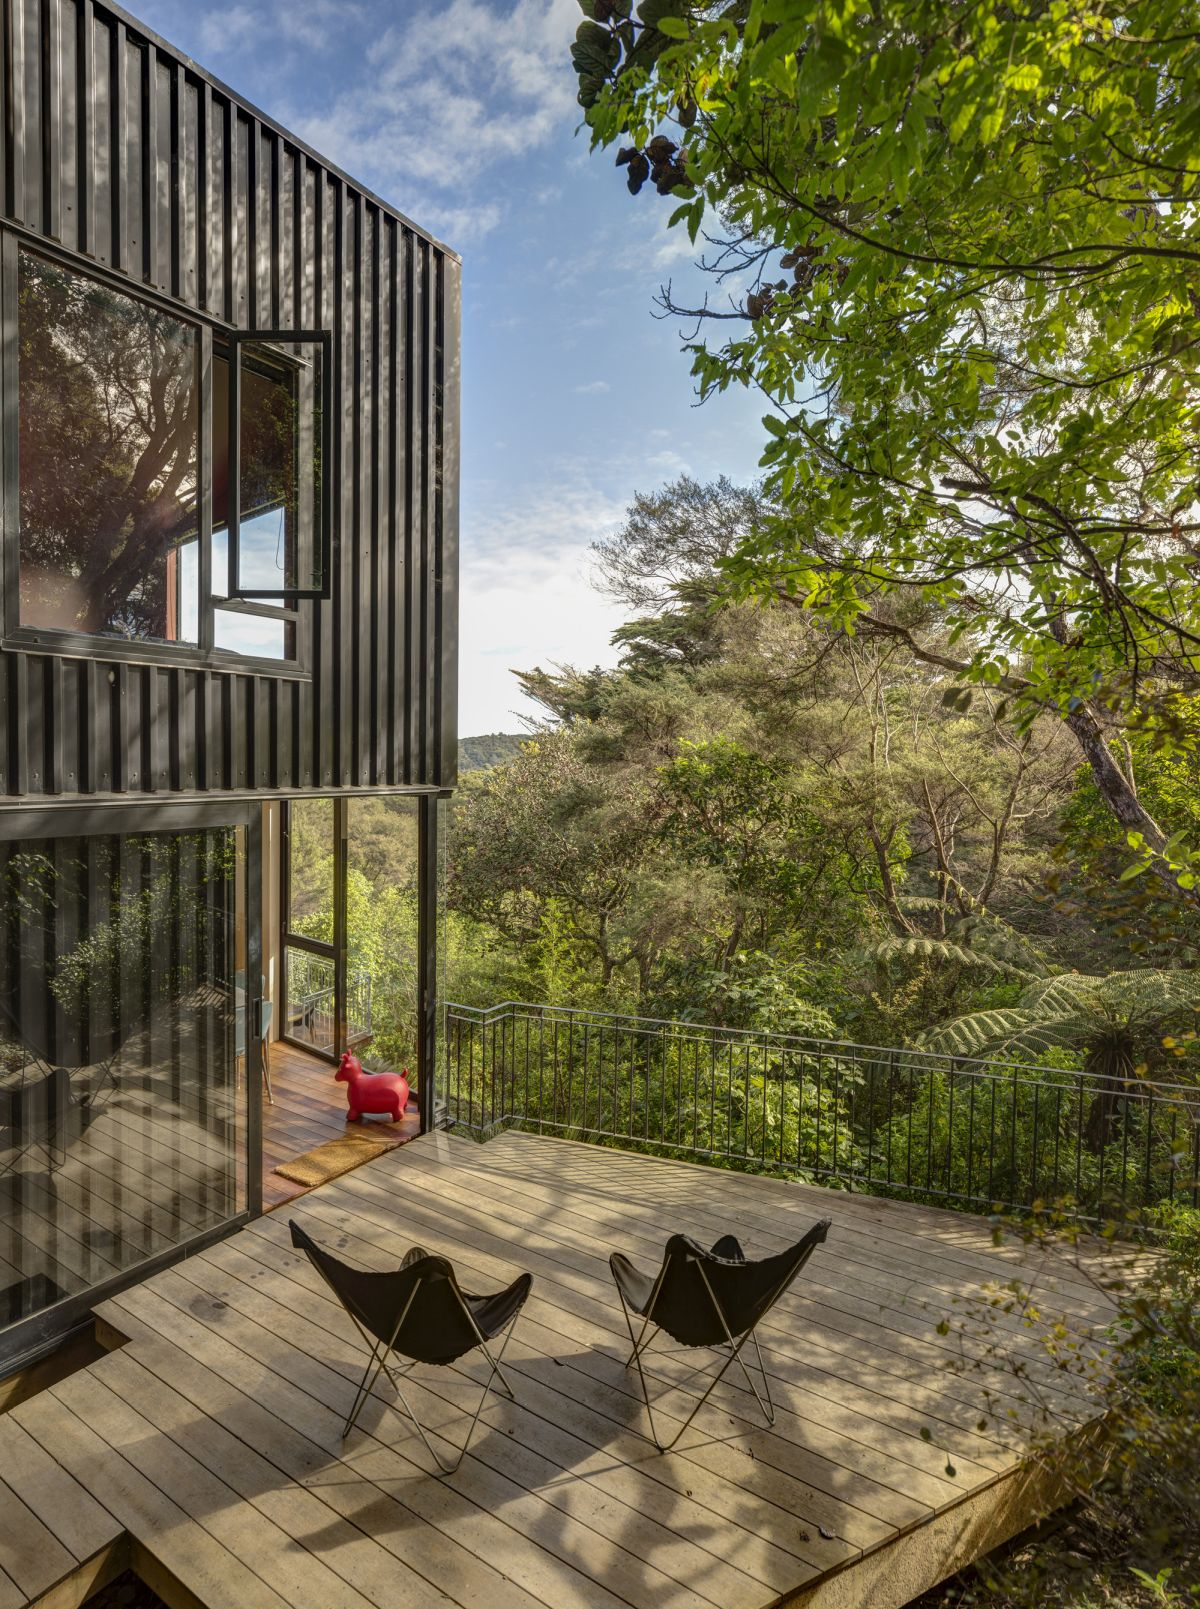 The tall and narrow structure allows the house to rise among the tall tree canopies and to make the most of its location